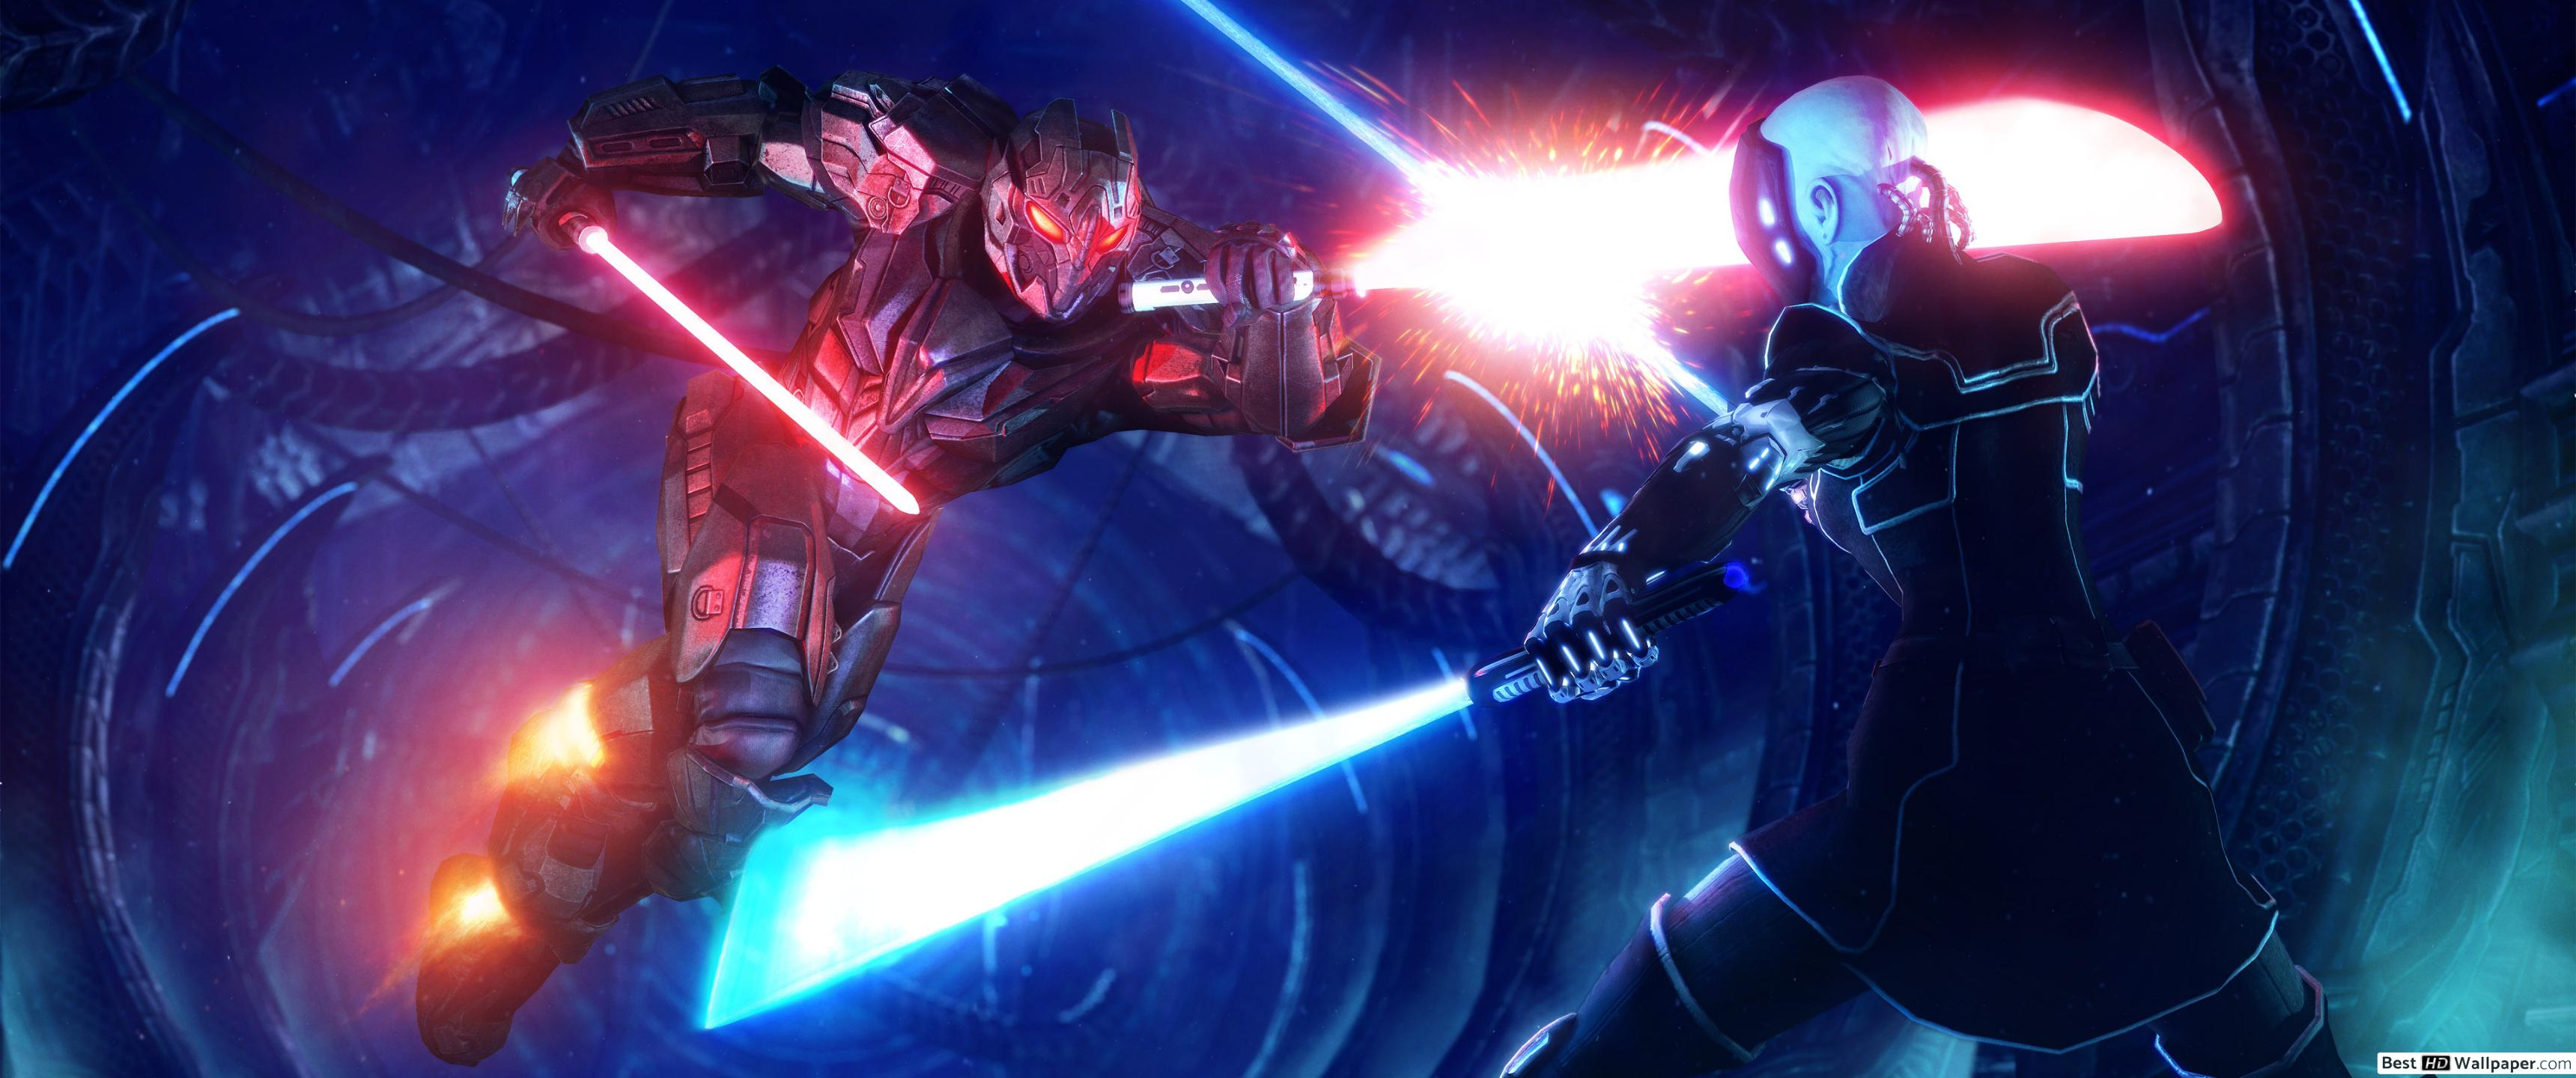 Star Wars 3440x1440 Wallpapers Top Free Star Wars 3440x1440 Backgrounds Wallpaperaccess